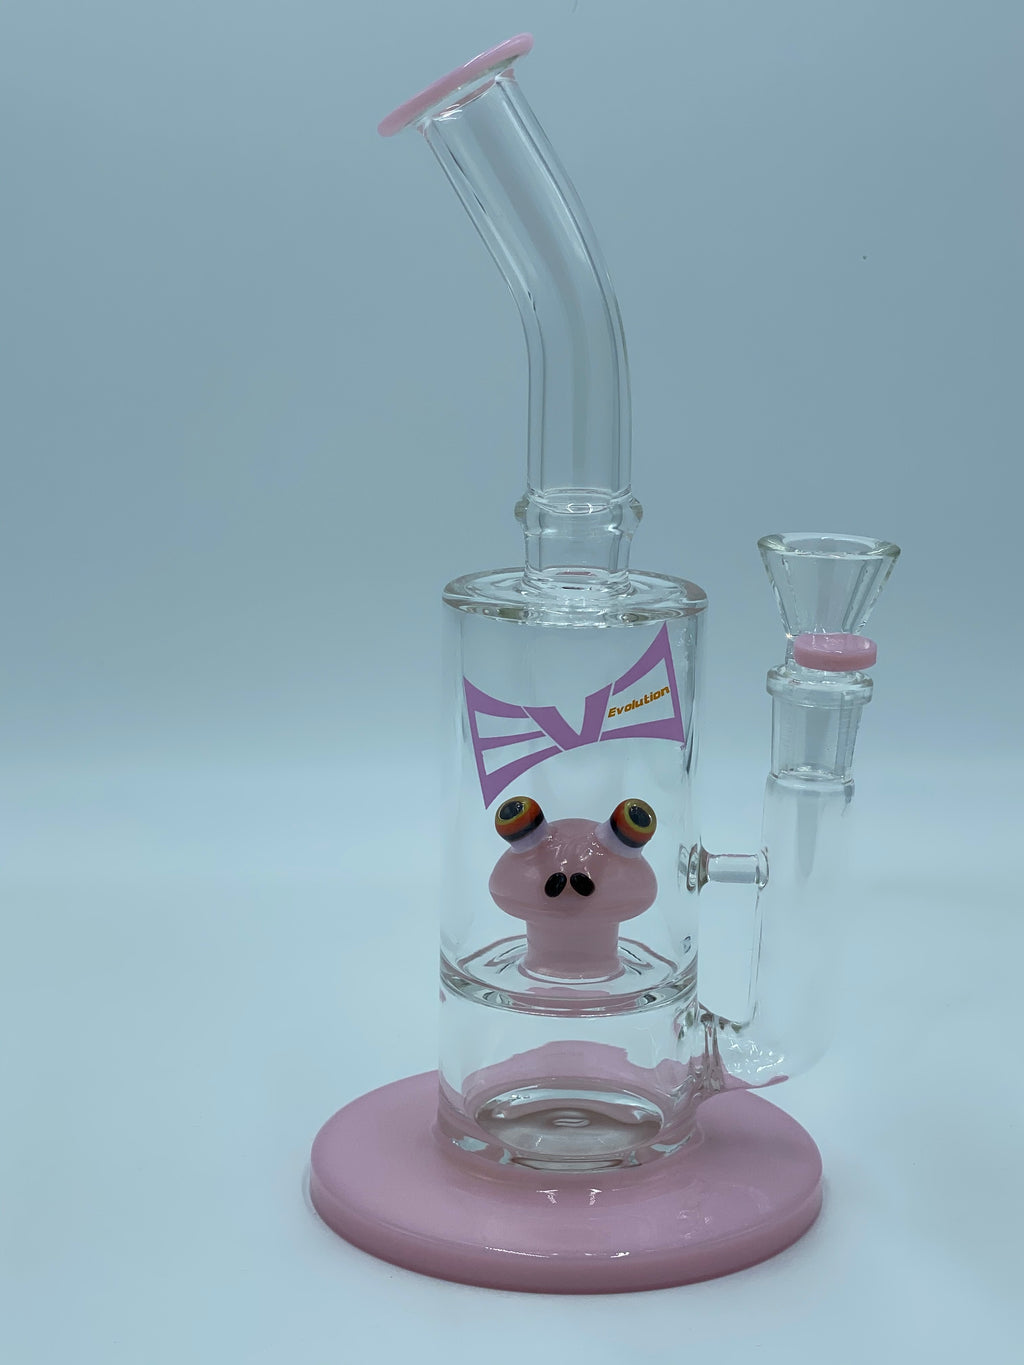 Evolution Glass PINK KERMIT PERCOLATOR - Smoke Country - Land of the artistic glass blown bongs